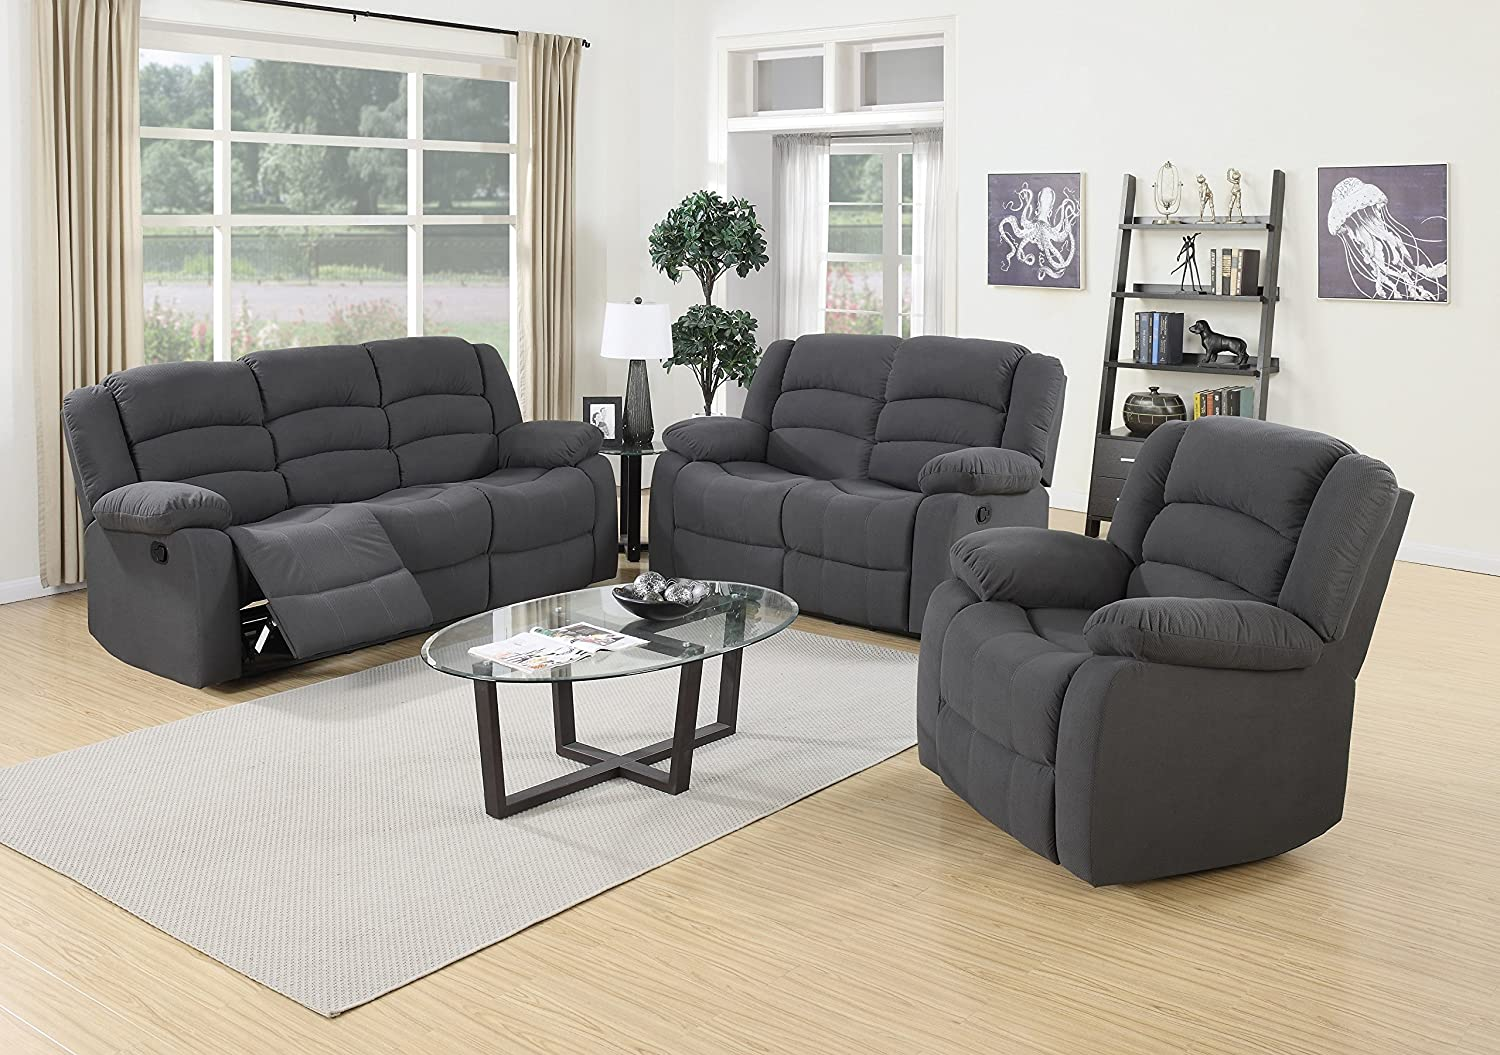 Amazon.com US Pride Furniture 3 Piece Grey Fabric Reclining Sofa Loveseat u0026 Chair Set Kitchen u0026 Dining & Amazon.com: US Pride Furniture 3 Piece Grey Fabric Reclining Sofa ... islam-shia.org